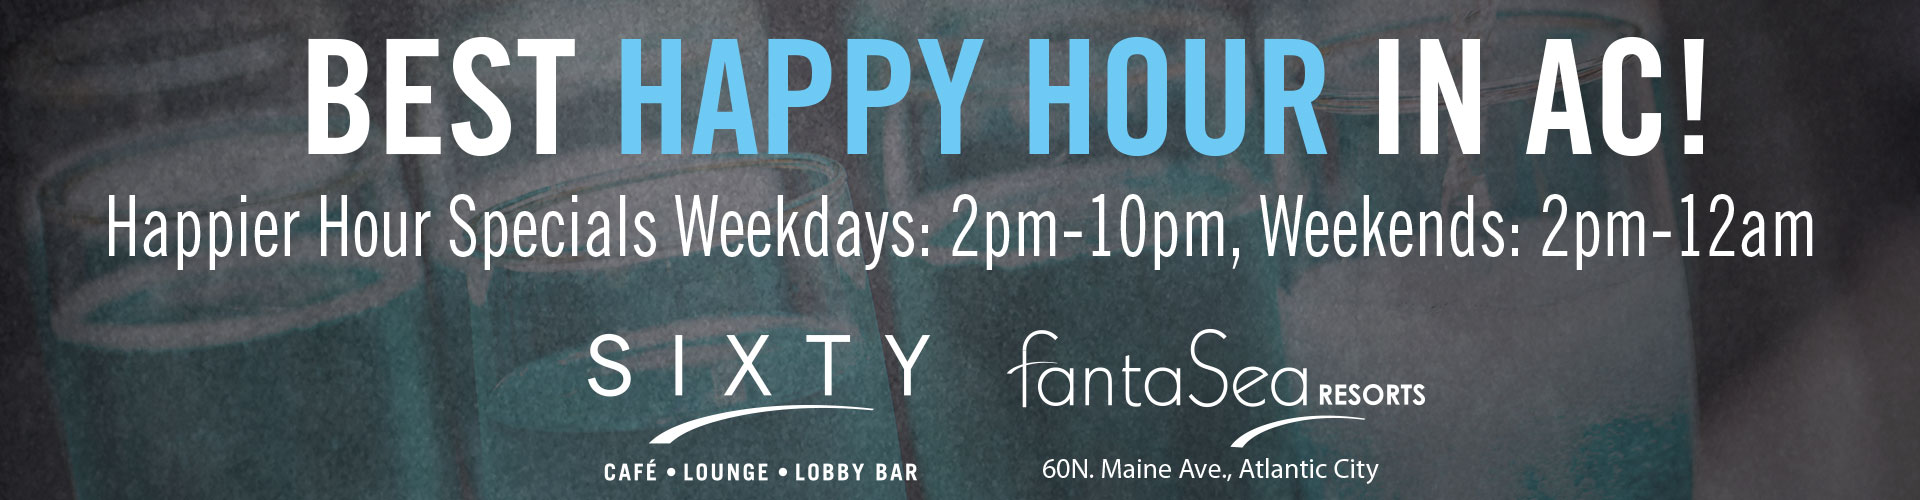 Drinks Menu - Sixty Cafe & Bar - FantaSea Resorts - Atlantic City, NJ